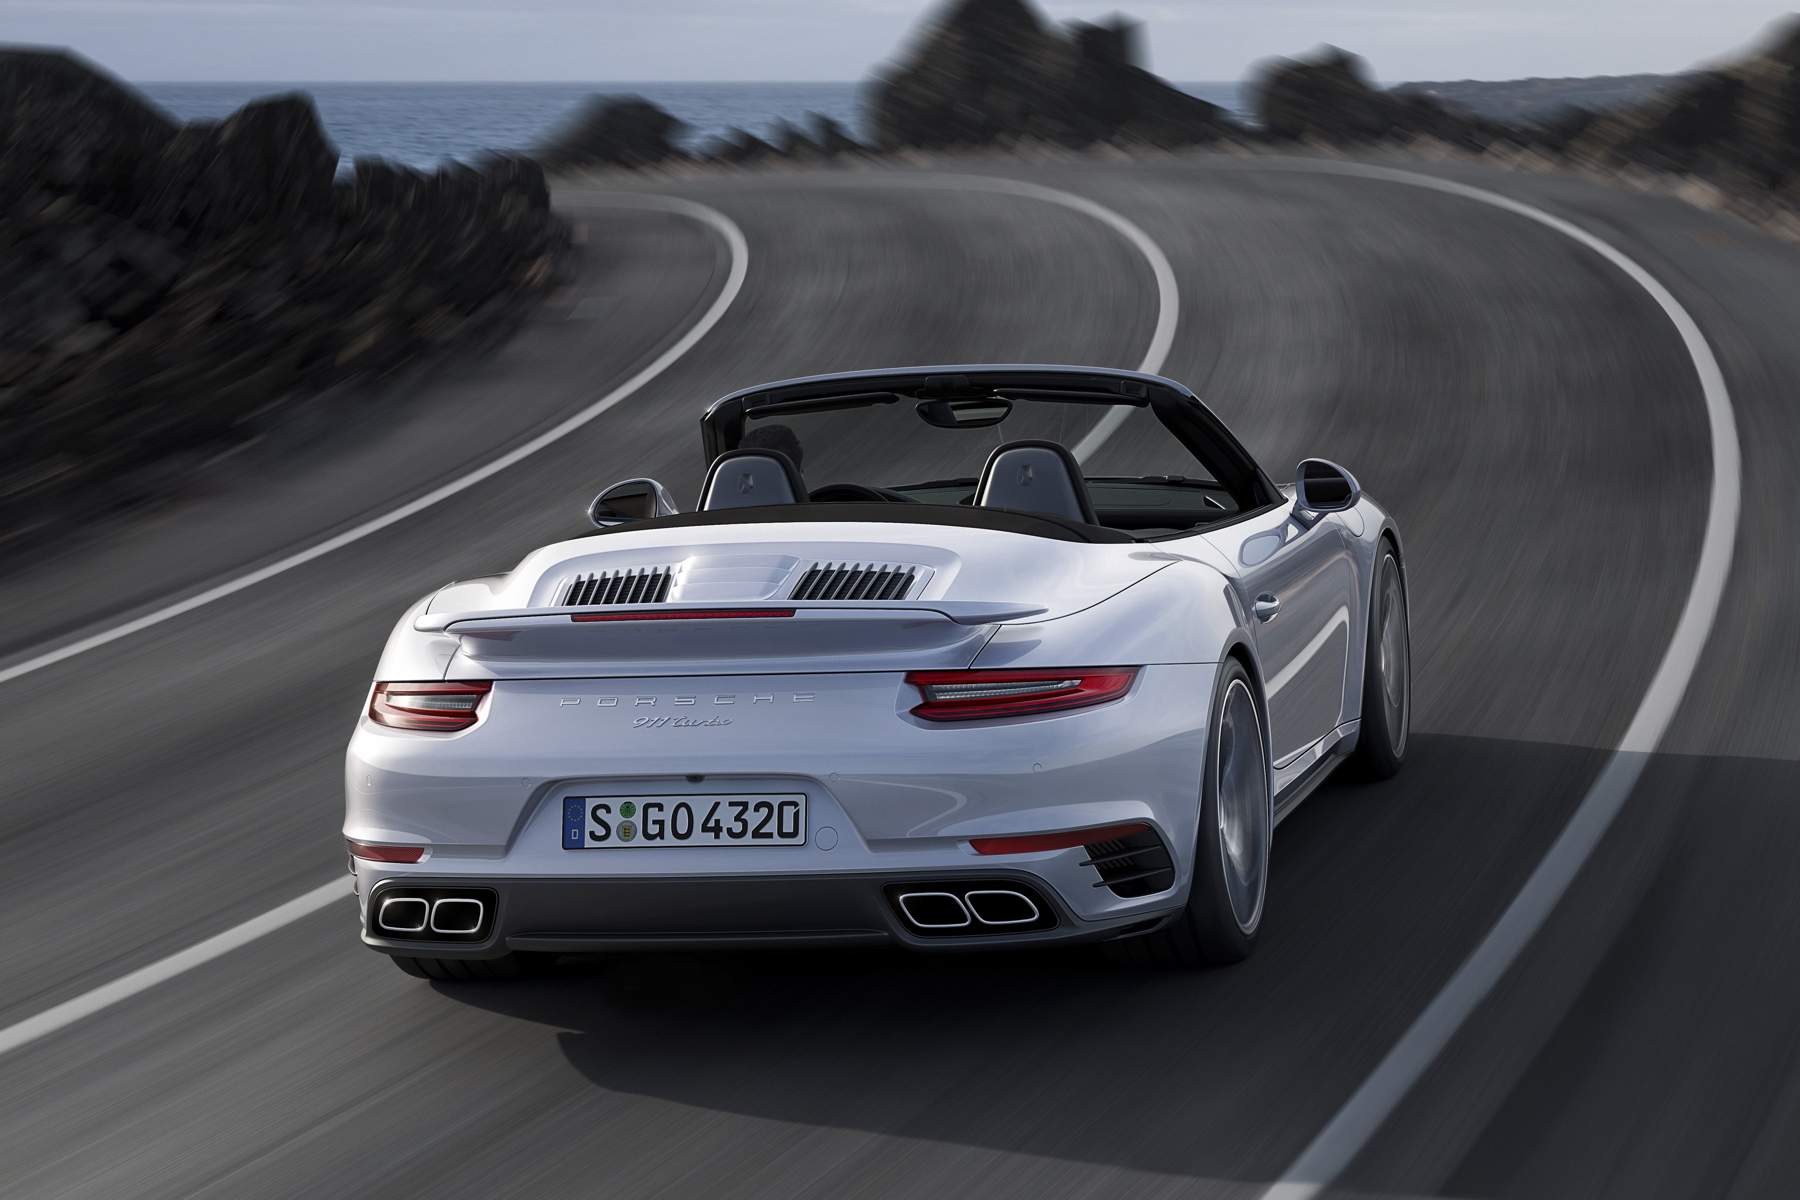 Cabriolet versions are also available for immediate order. First deliveries are expected to UK Porsche Centres at the end of January.